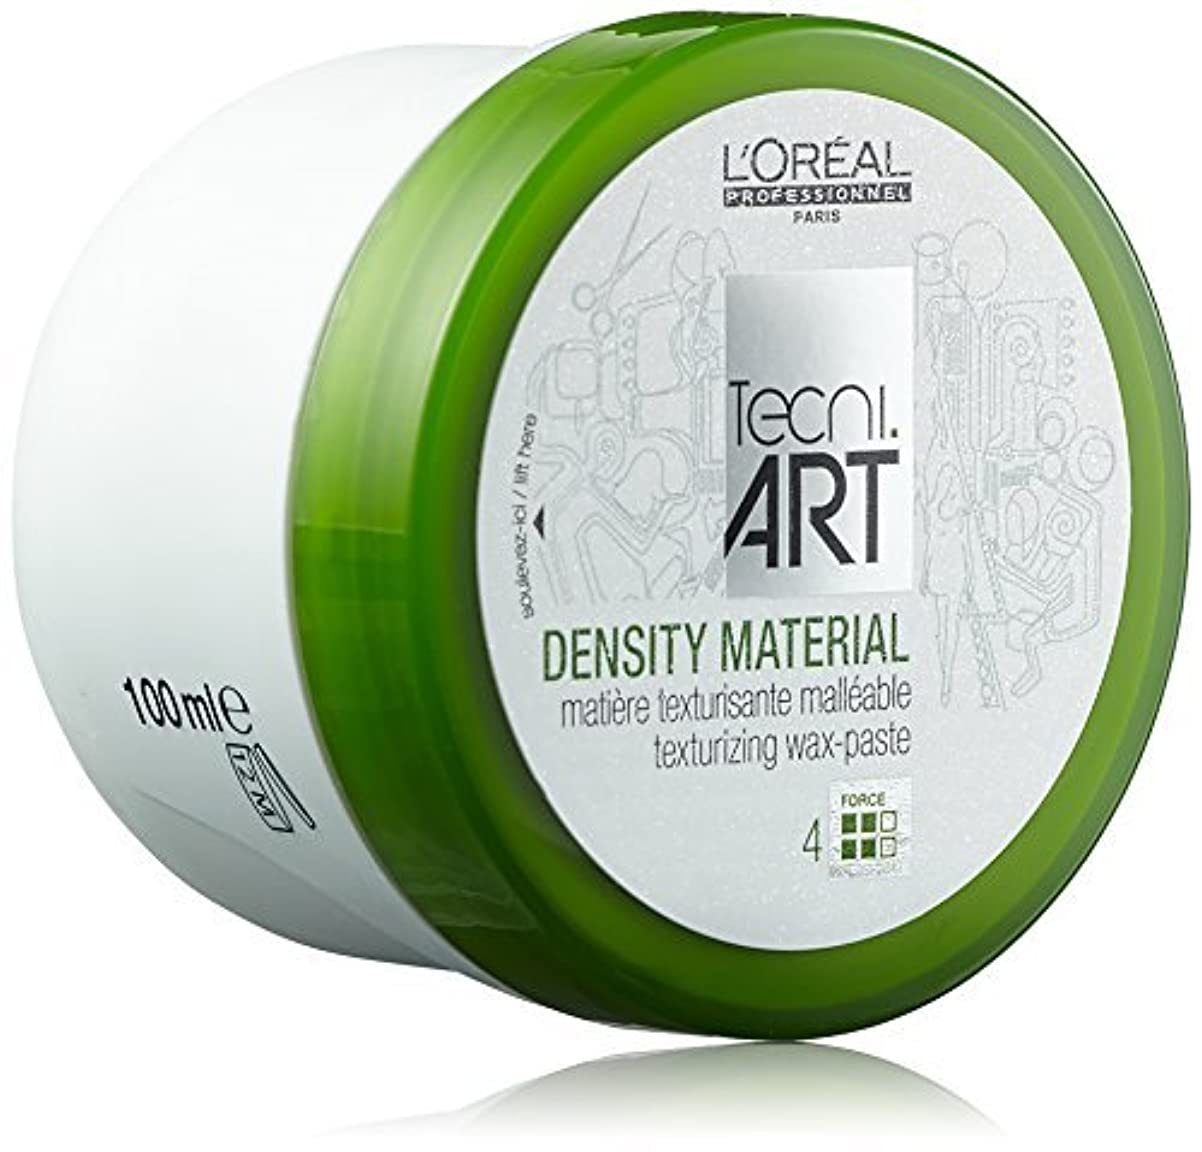 荒れ地立ち向かう学校教育L'Oreal Professionnel Tecni.Art Play Ball Density Material 100ml/3.4oz by L'oreal [並行輸入品]